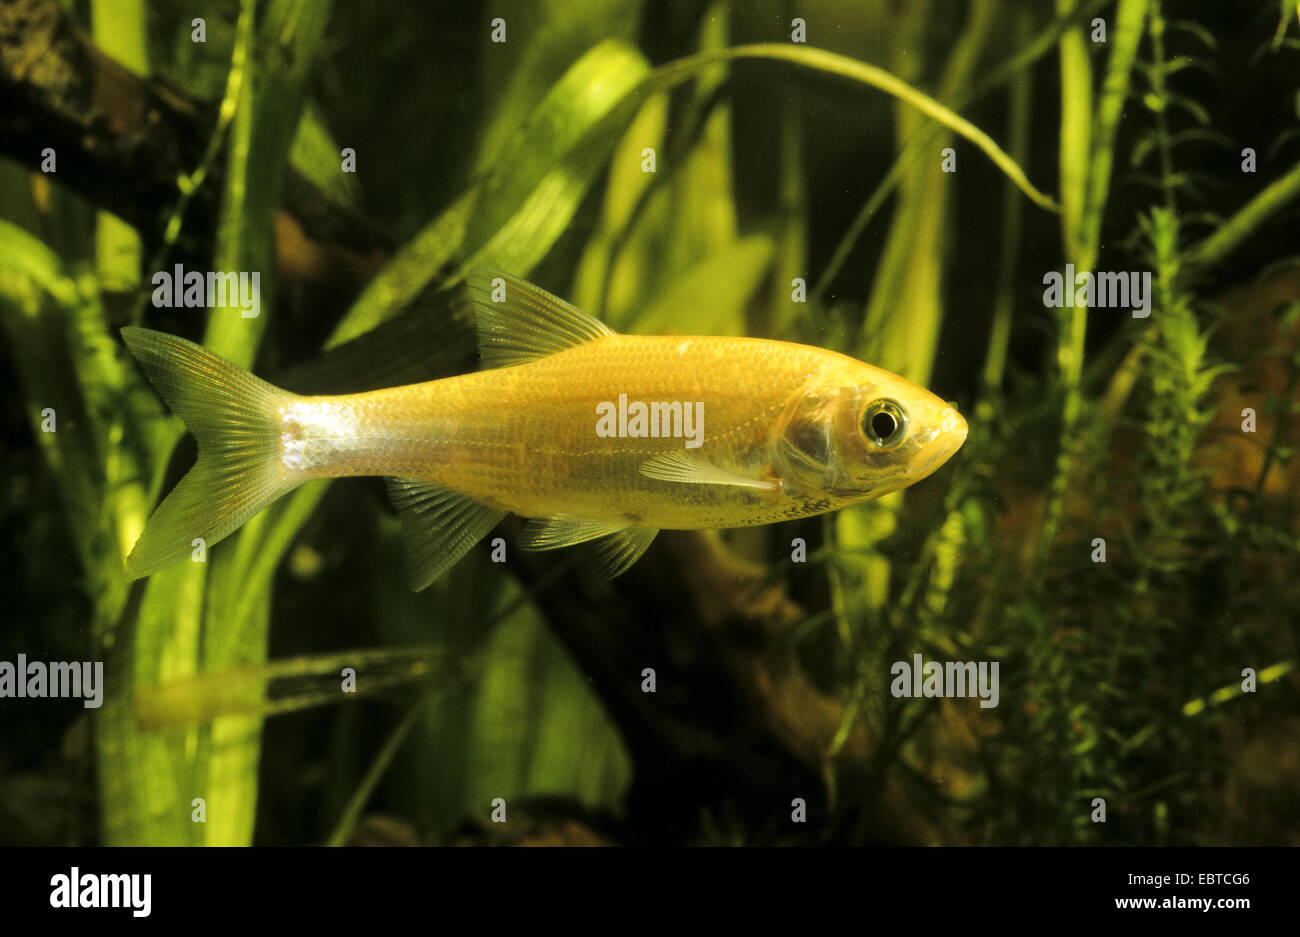 ide, id, orfe, golden orfe (Leuciscus idus), cultivated form, swimming among water plants - Stock Image